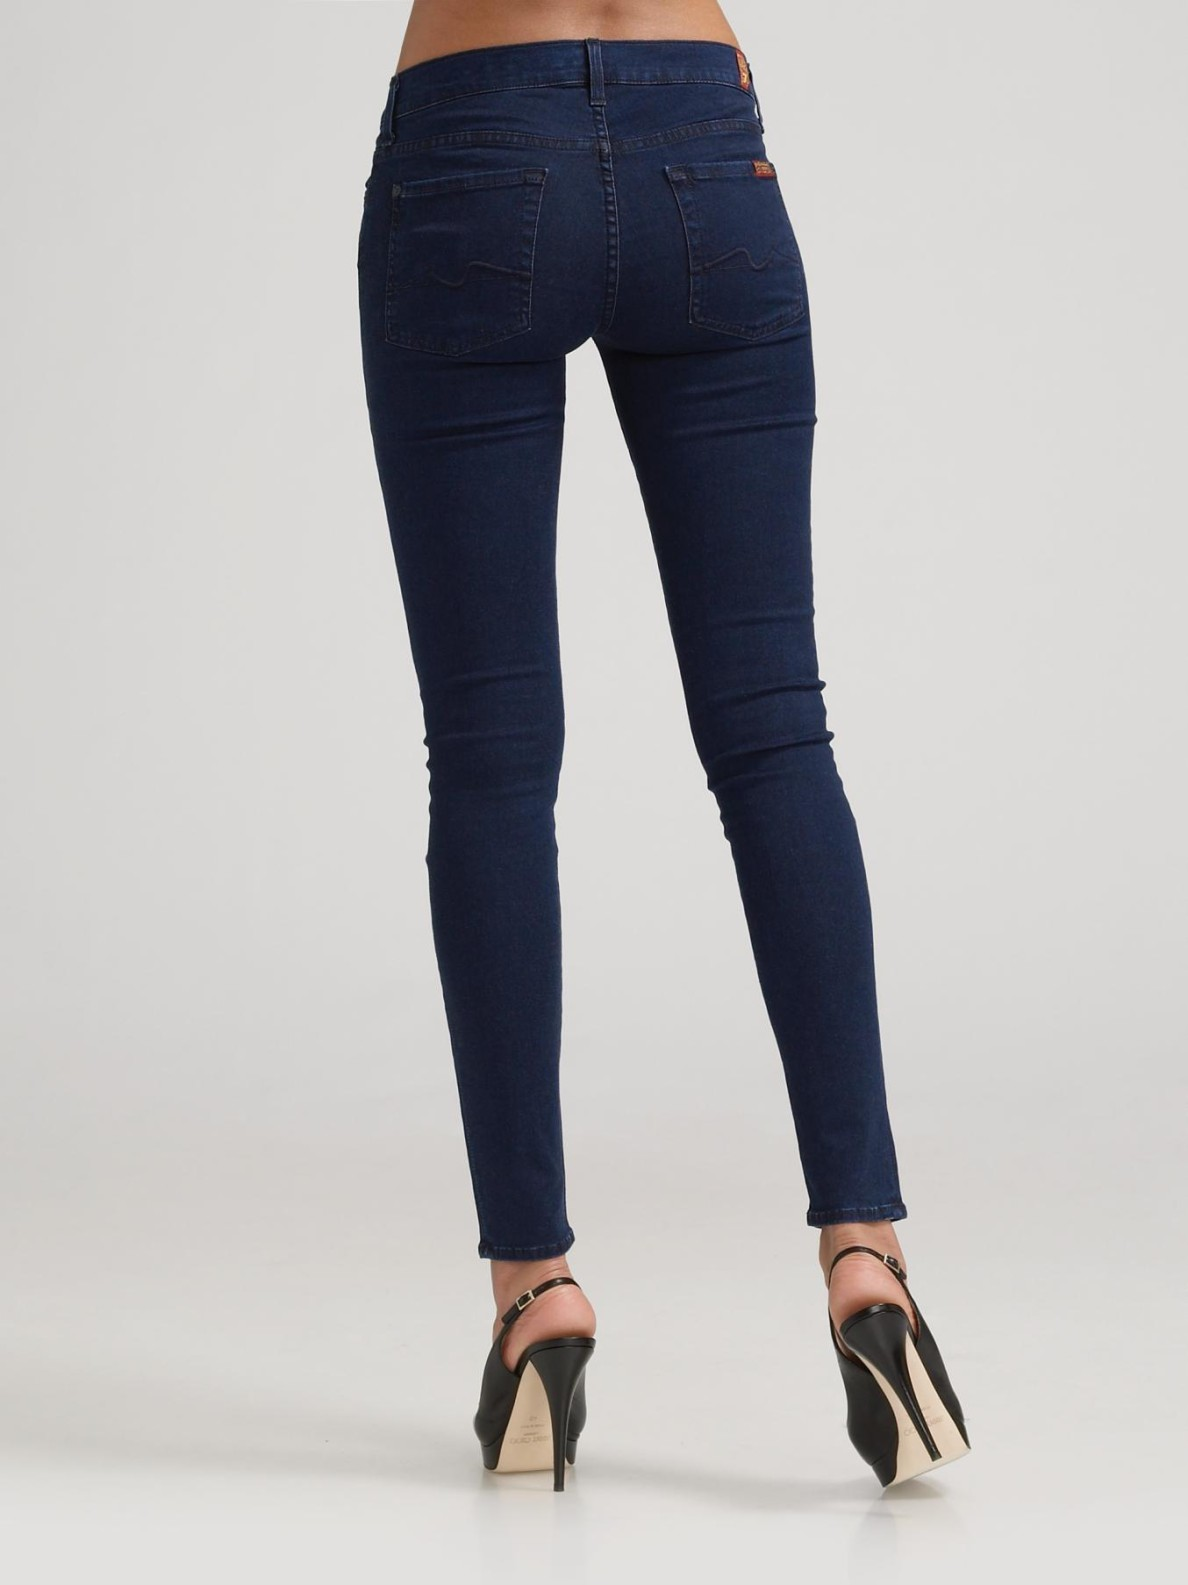 7 for all mankind Gwenevere Skinny Jeans in Black | Lyst